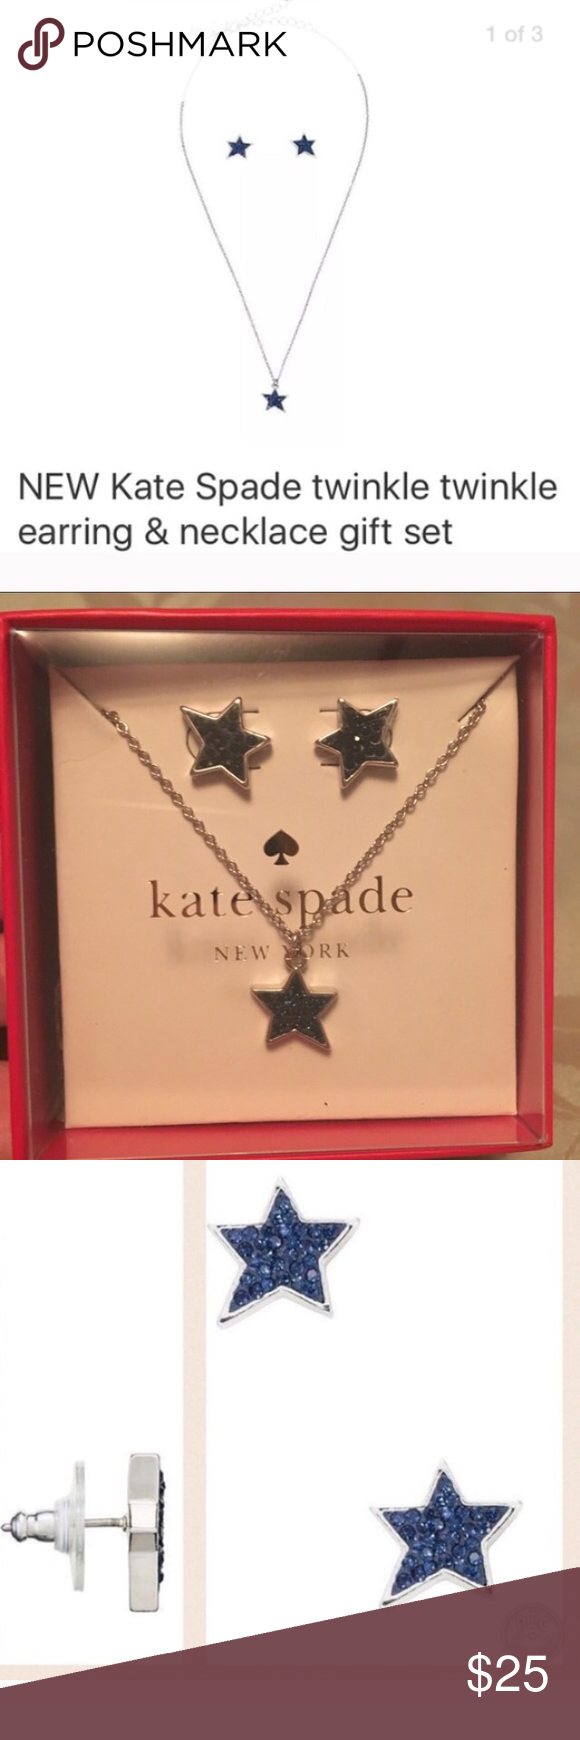 NWT Kate spade twinkle earrings & necklace set Boxed set from Kate Spade , silver and blue star . Earrings and necklace kate spade Jewelry Necklaces